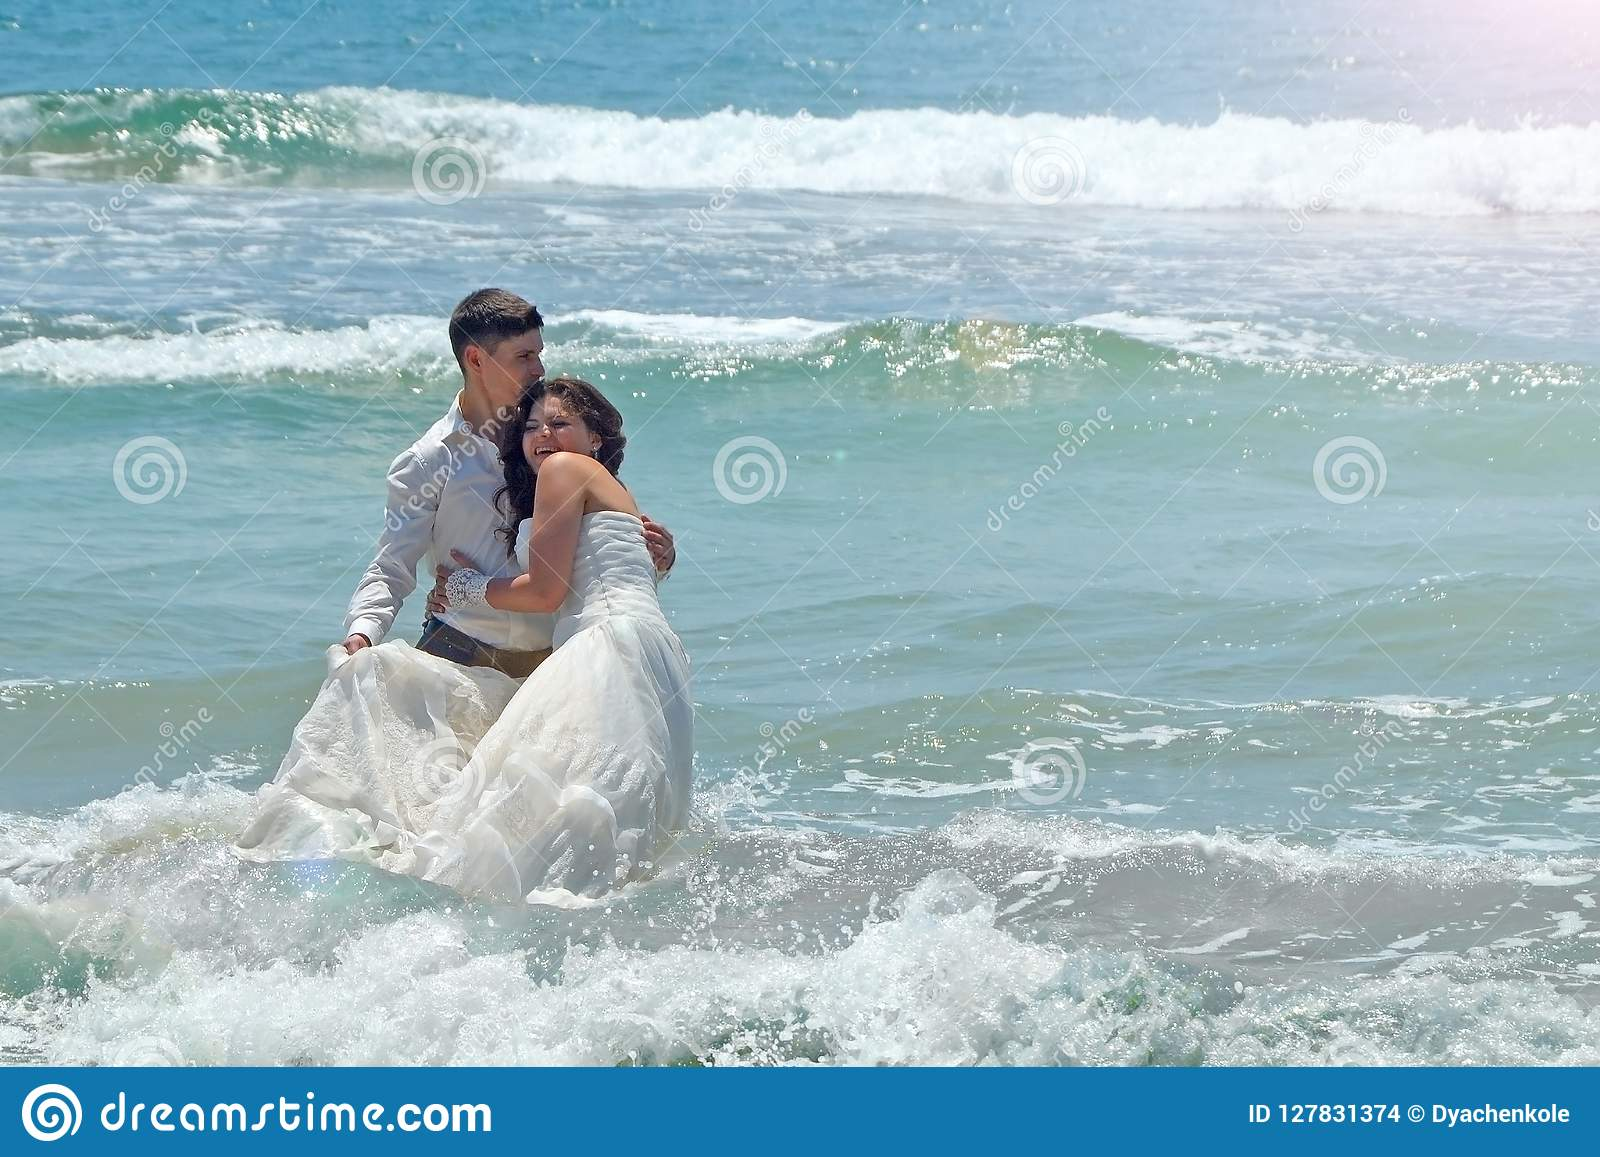 Happy newlyweds hug and laugh in the waters of the Indian Ocean. sunny wedding day and honeymoon in the tropics on the island